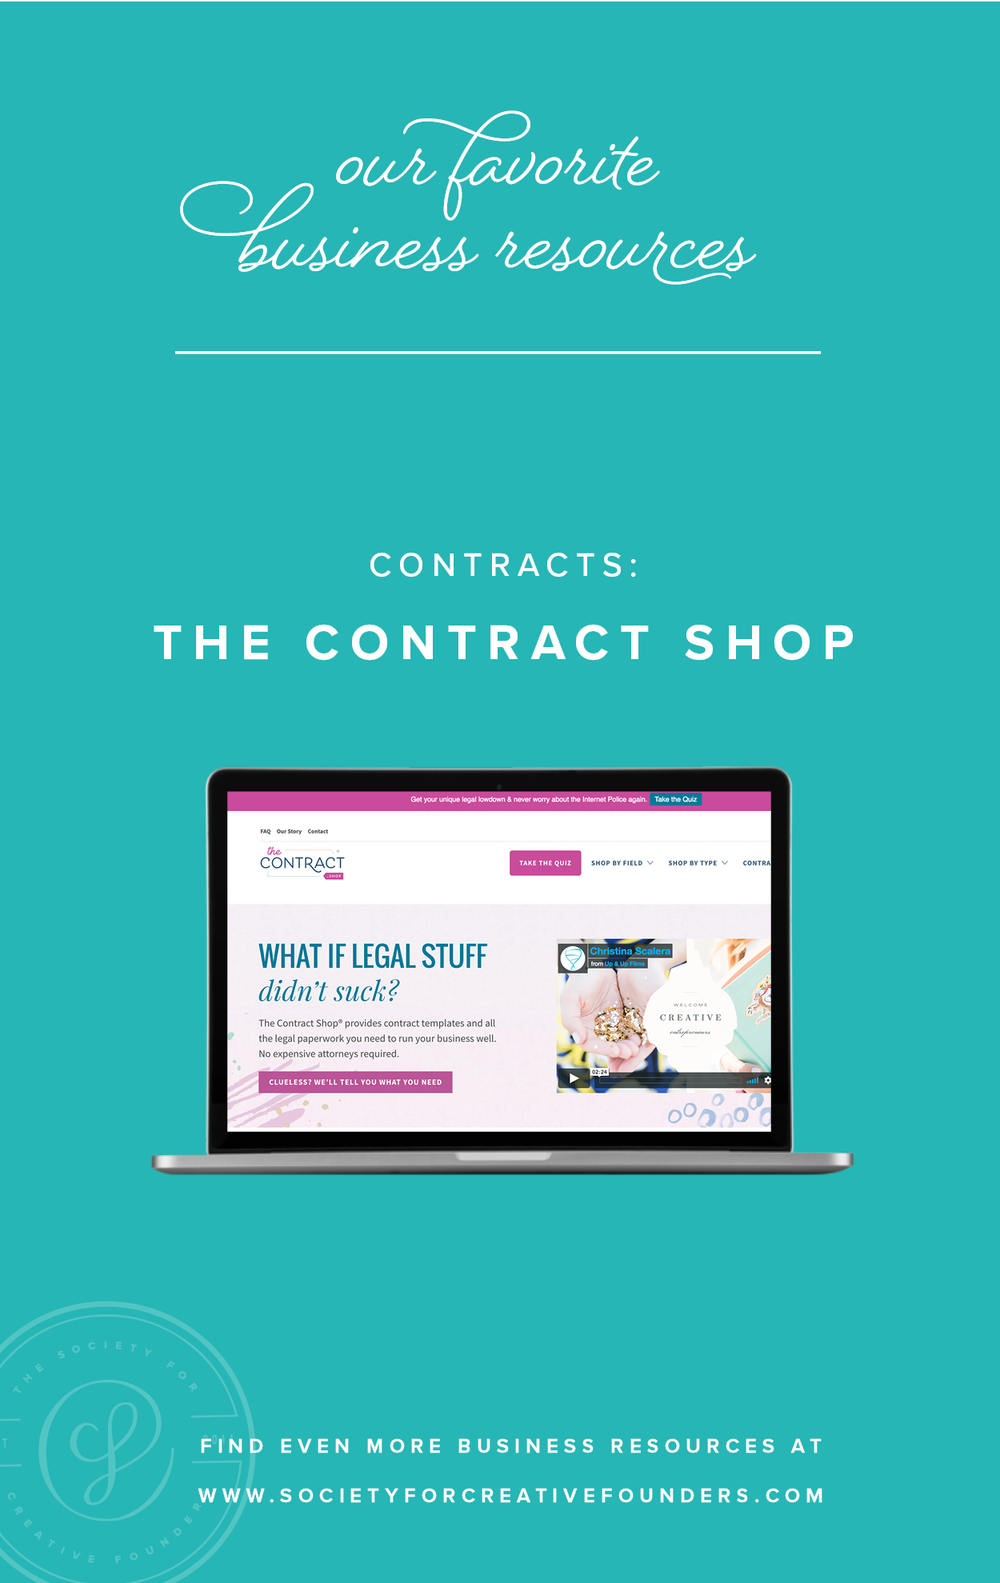 The Contract Shop - Favorite Business Resources from Society for Creative Founders